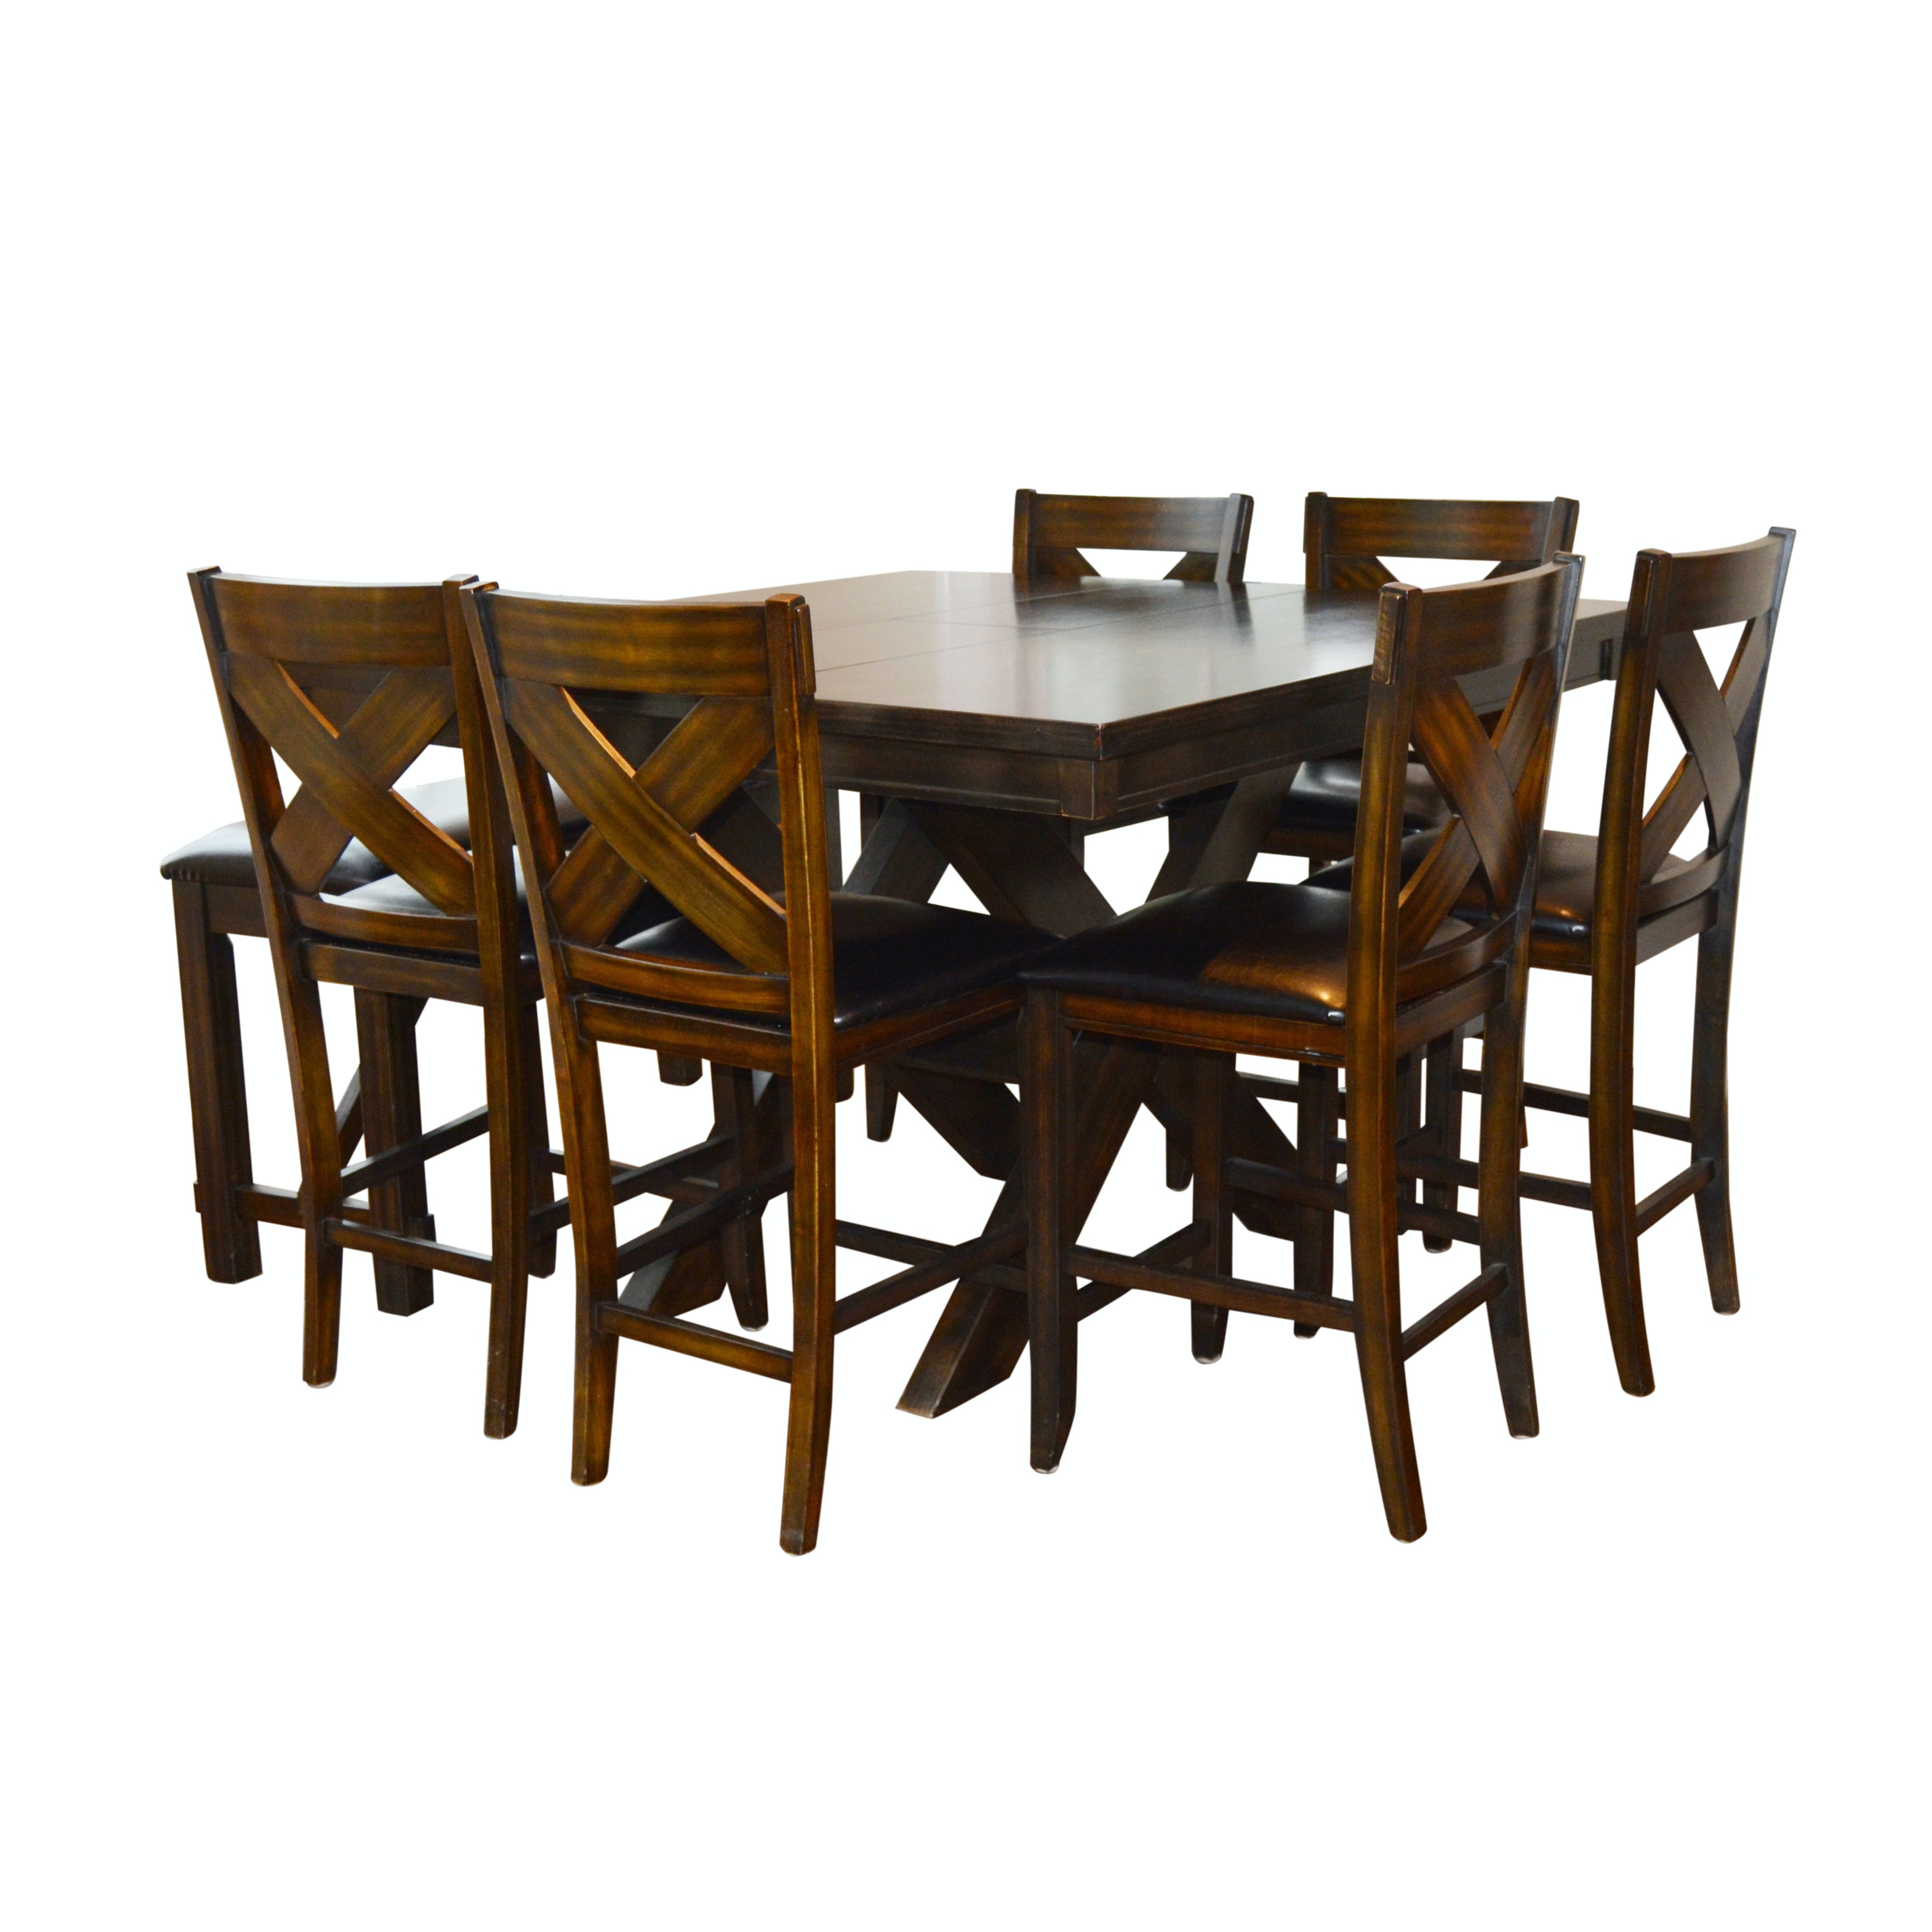 Contemporary High Table with Chairs and Bench